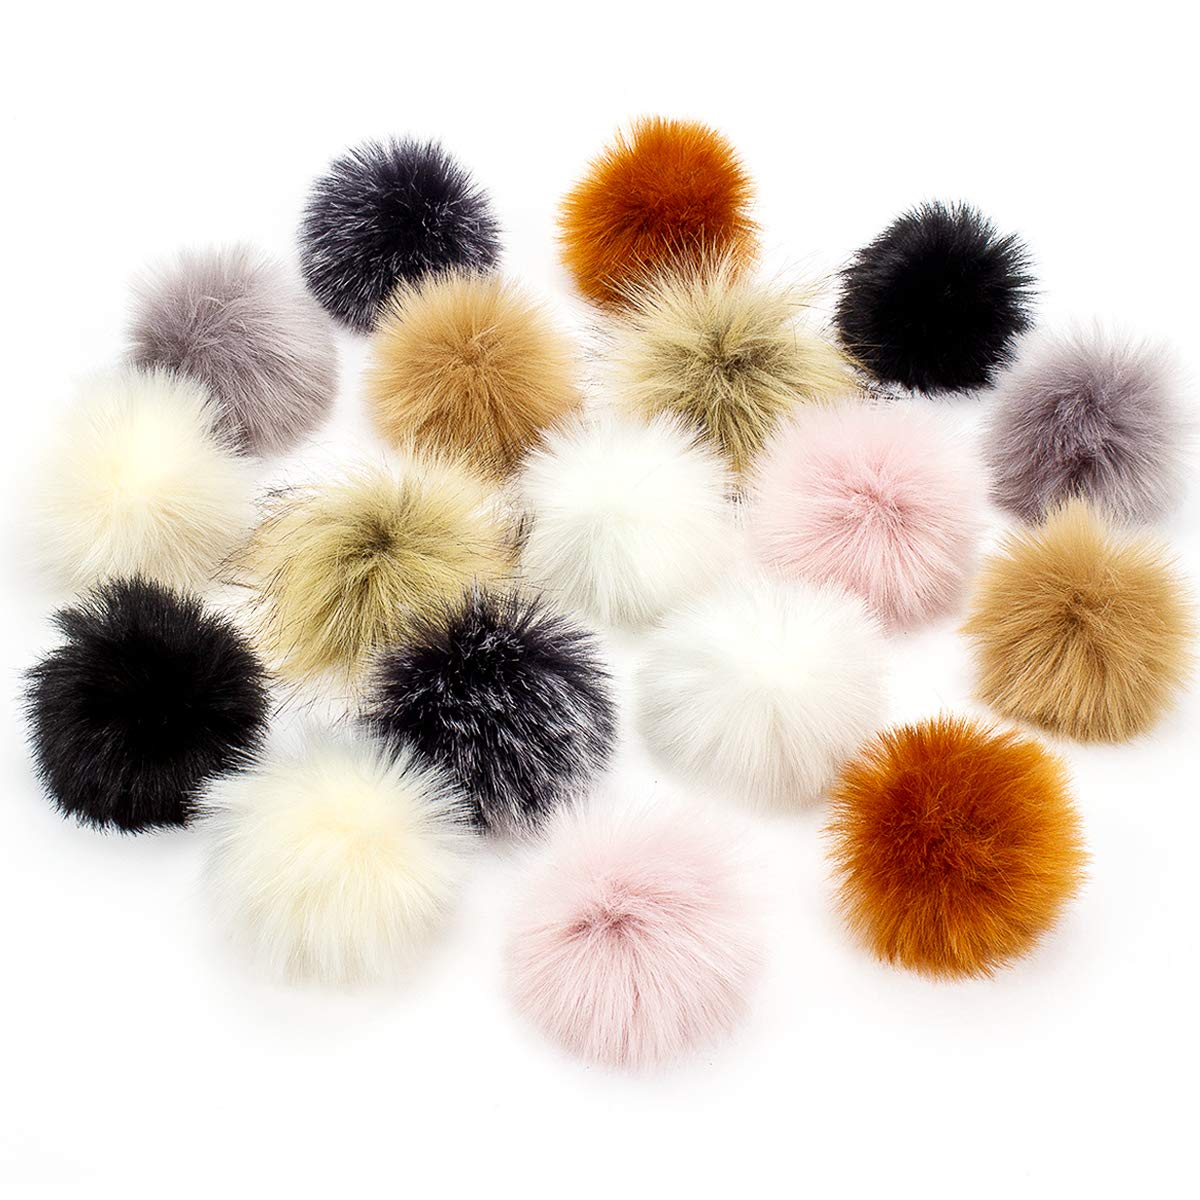 Cosweet 18pcs Faux Fur Pompom Balls 3.9 inch Fluffy Pompom for Knitting Hat Shoes Scarves DIY Accessories